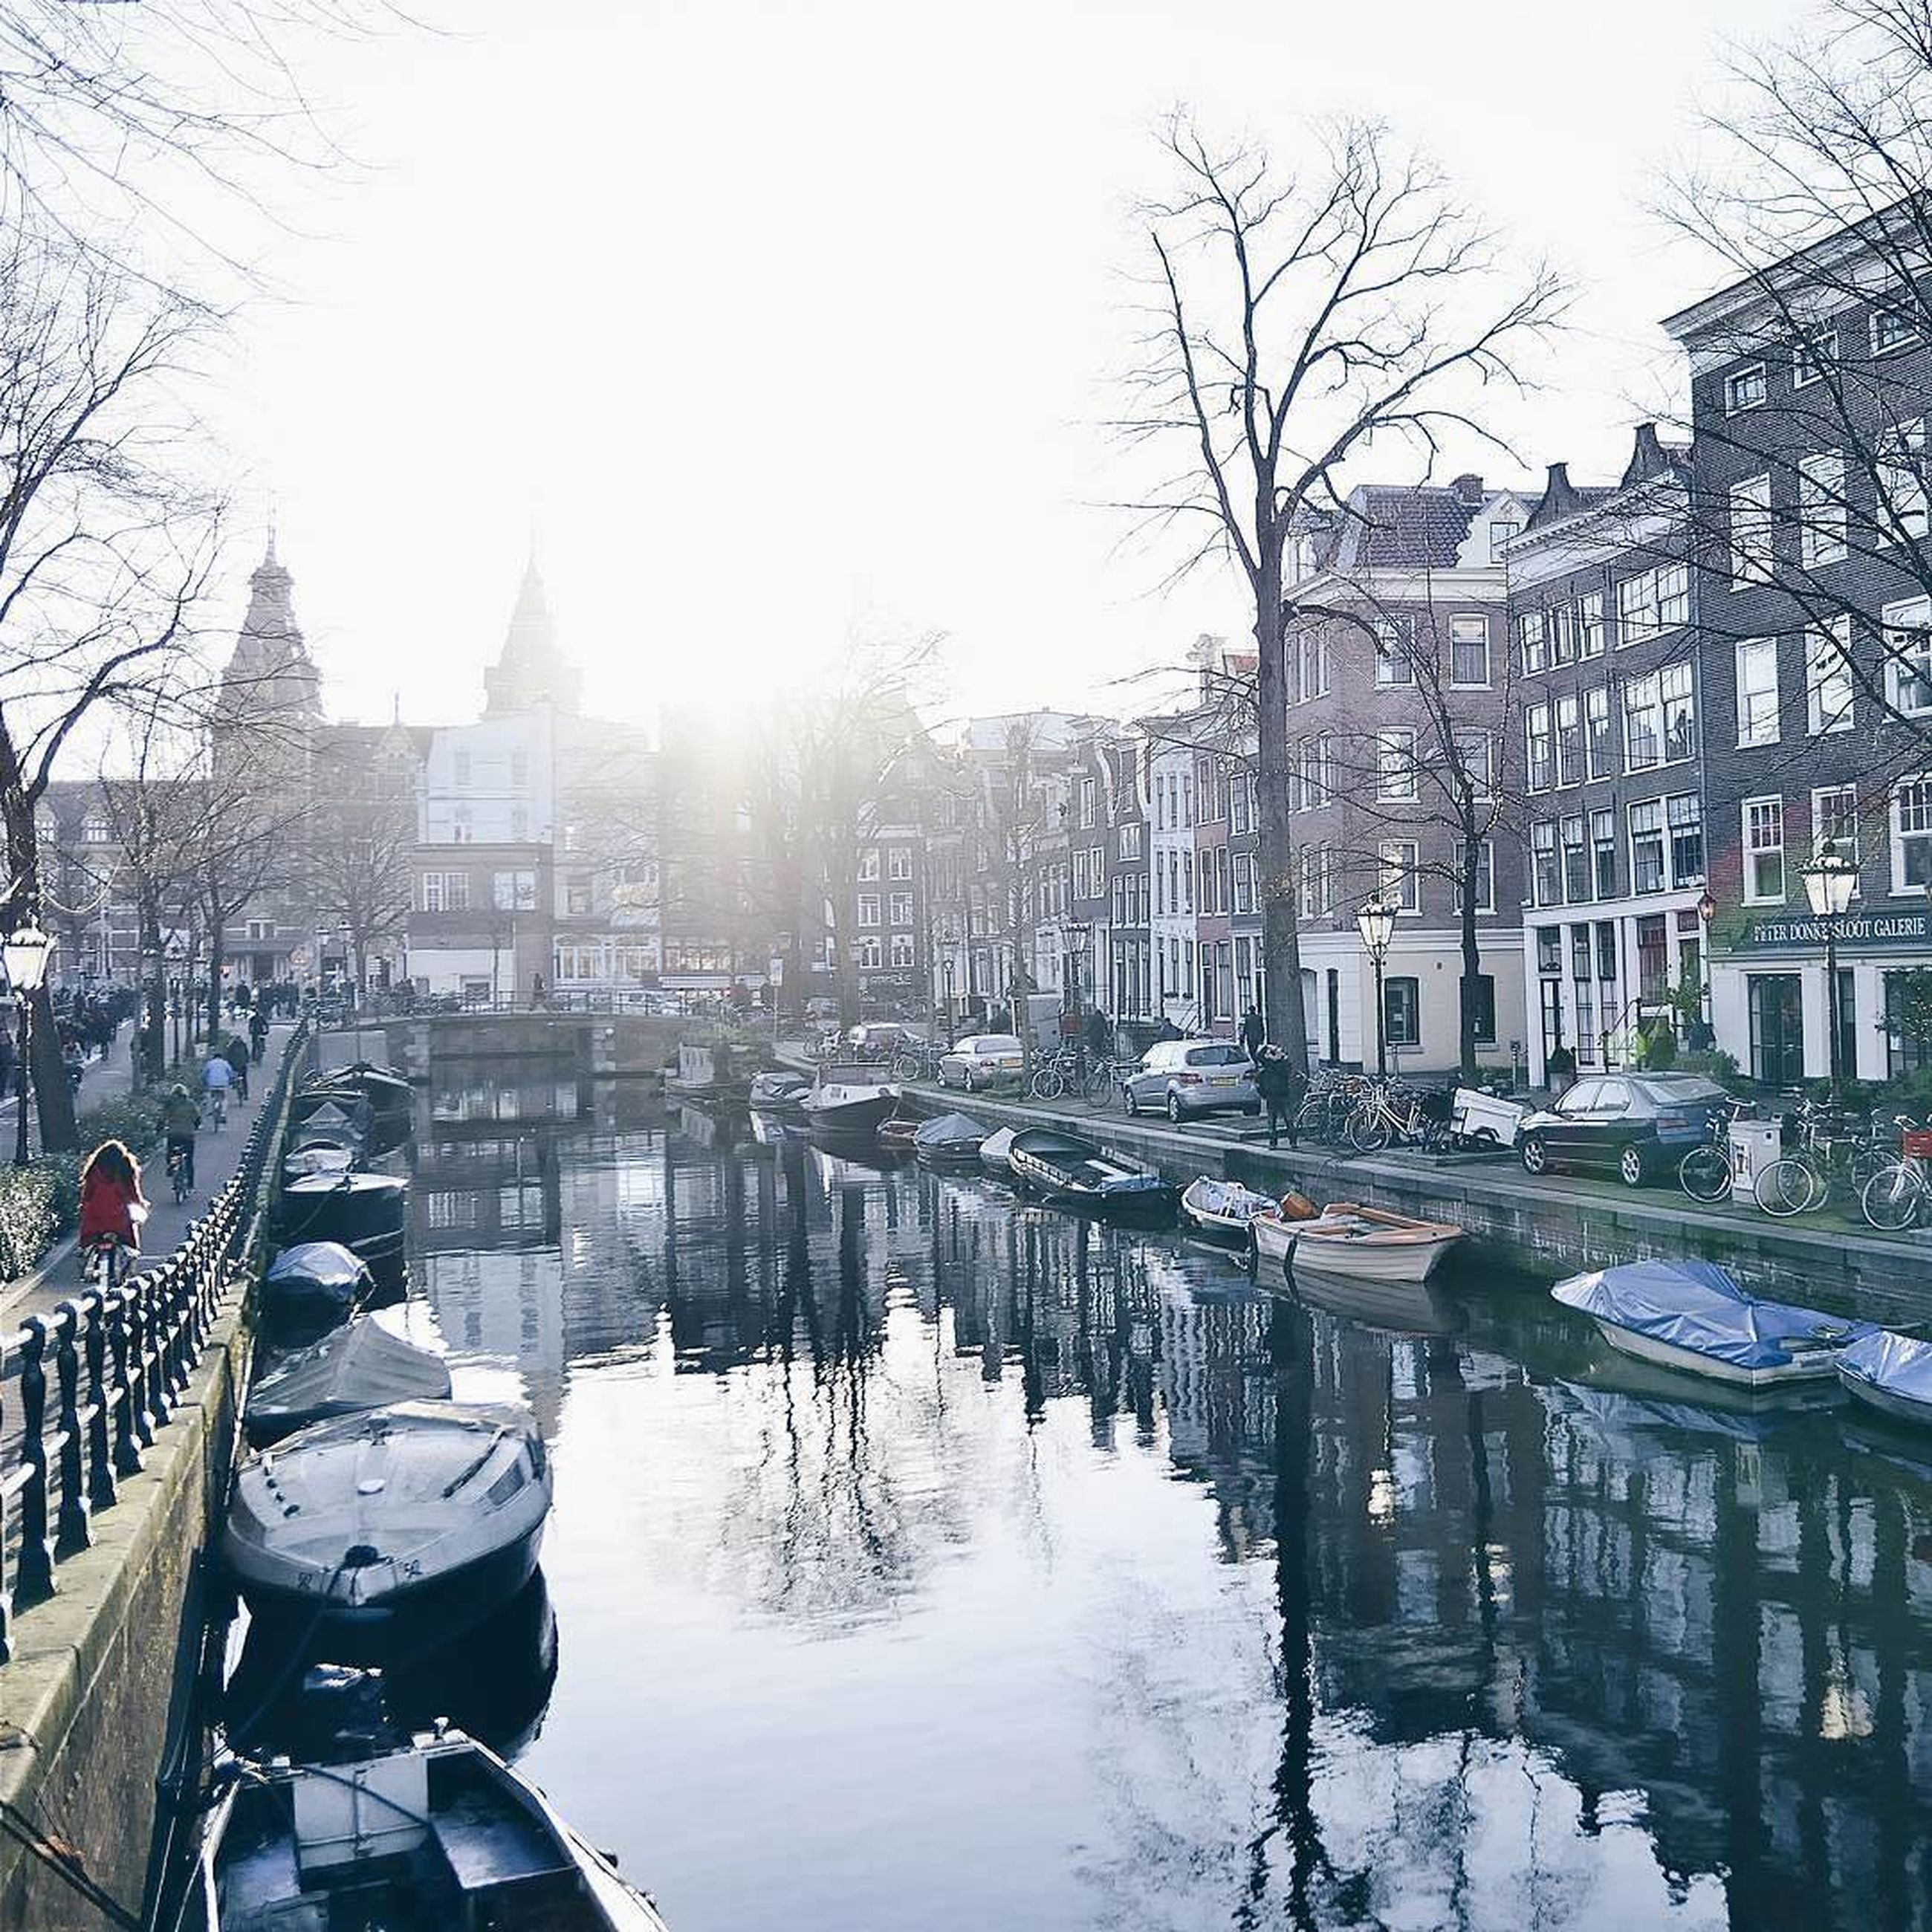 building exterior, architecture, built structure, winter, cold temperature, bare tree, snow, clear sky, city, water, tree, reflection, season, canal, river, weather, sky, day